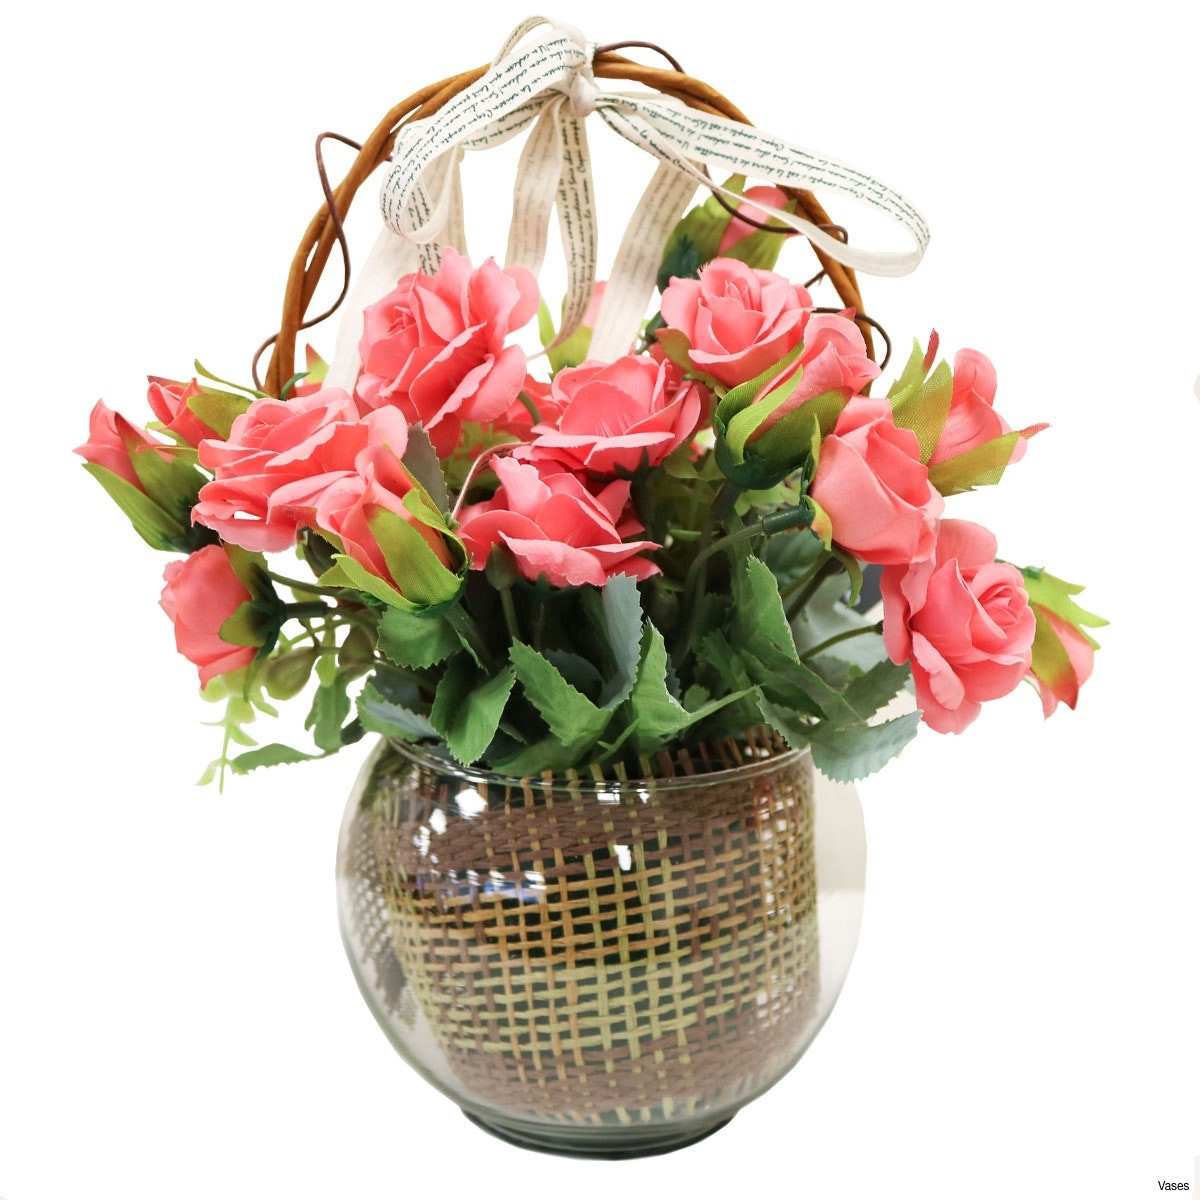 Plant Vase Decoration Of 30 Elegant Flower Basket Decoration Flower Decoration Ideas In Bf142 11km 1200x1200h Vases Pink Flower Vase I 0d Gold Inspiration